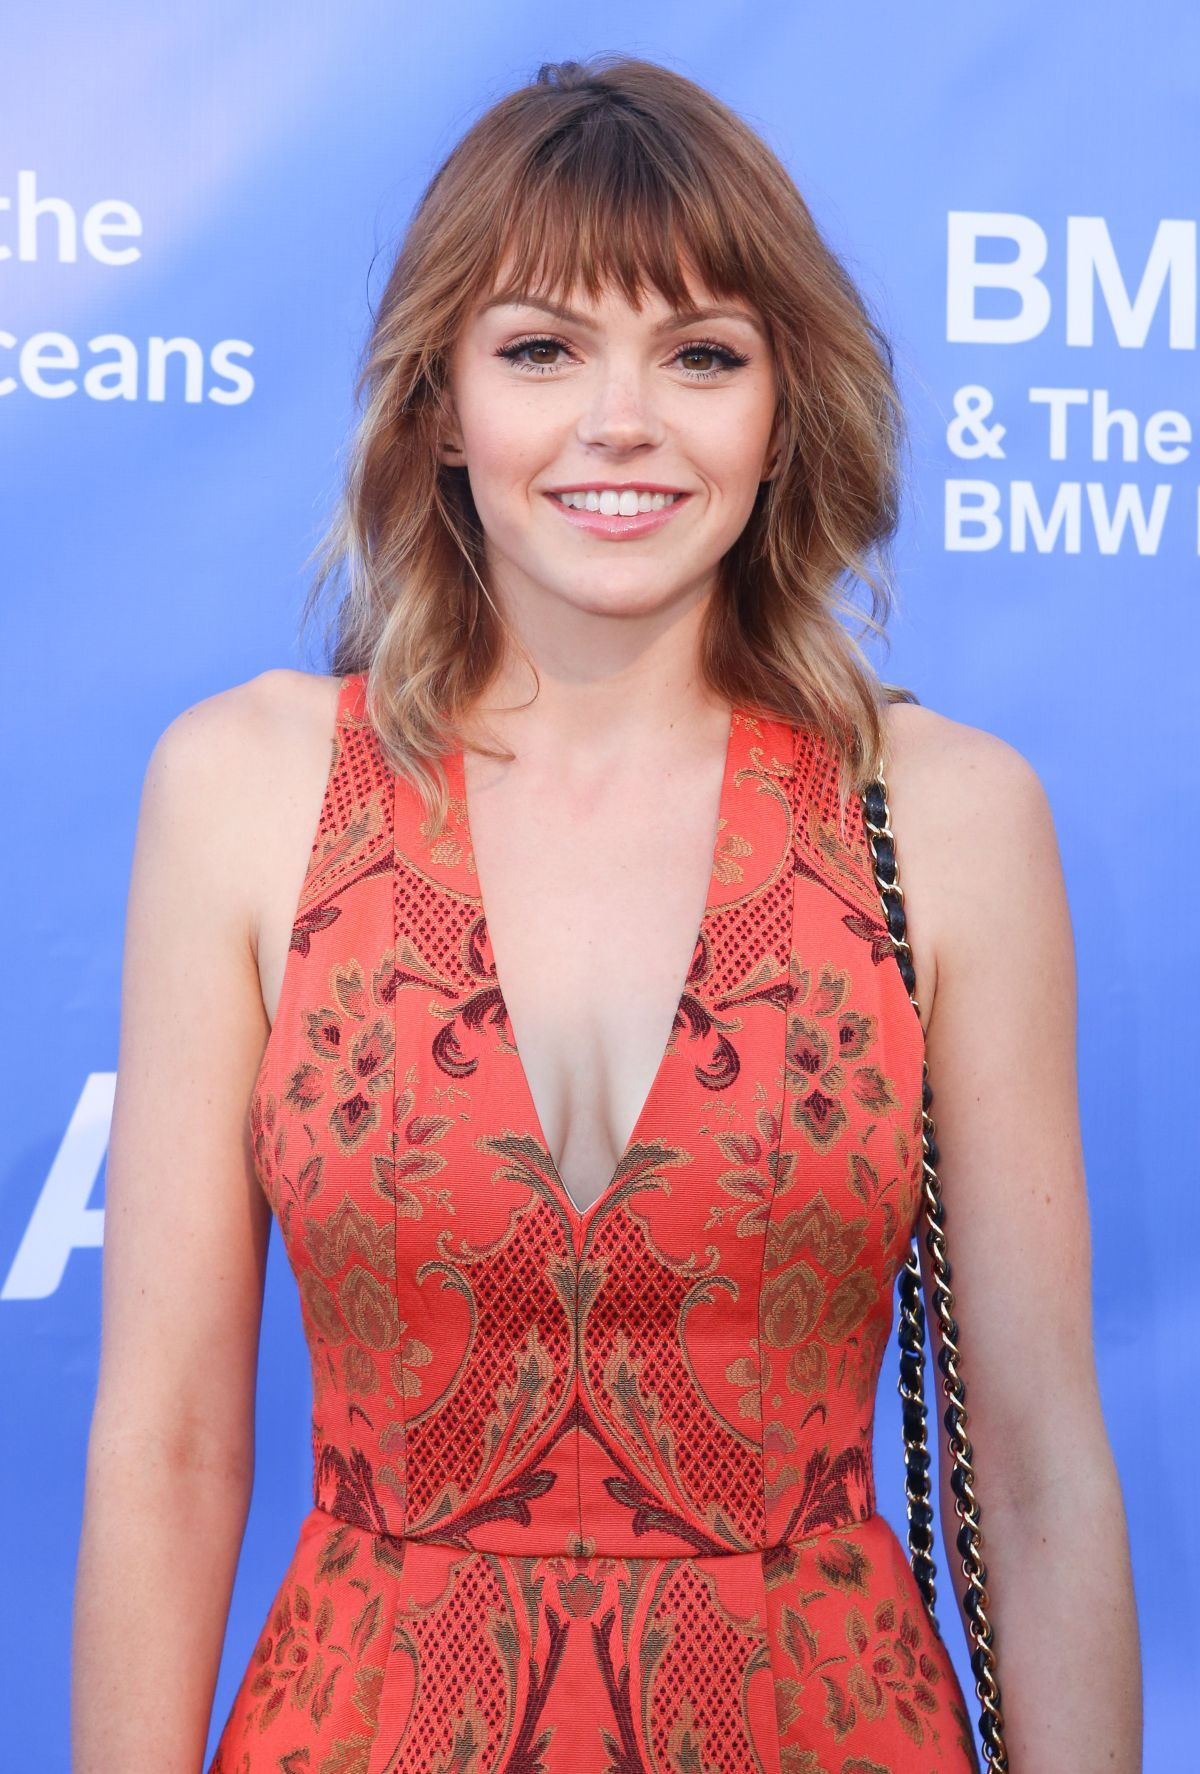 Iphone Wallpaper Disney Quotes Pictures Of Aimee Teegarden Picture 327894 Pictures Of